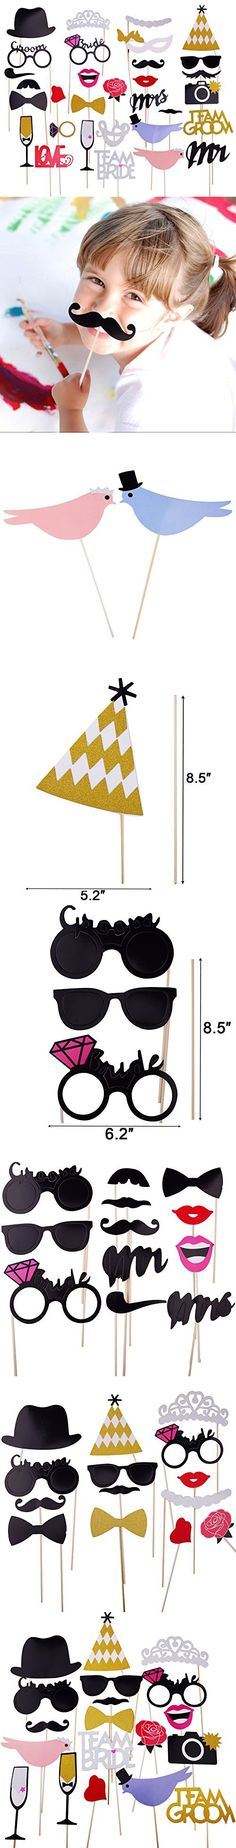 Wedding Decoration Props Photo Booth for Birthday Anniversary Party Photobooth Shower Kiss Mouths 31pcs